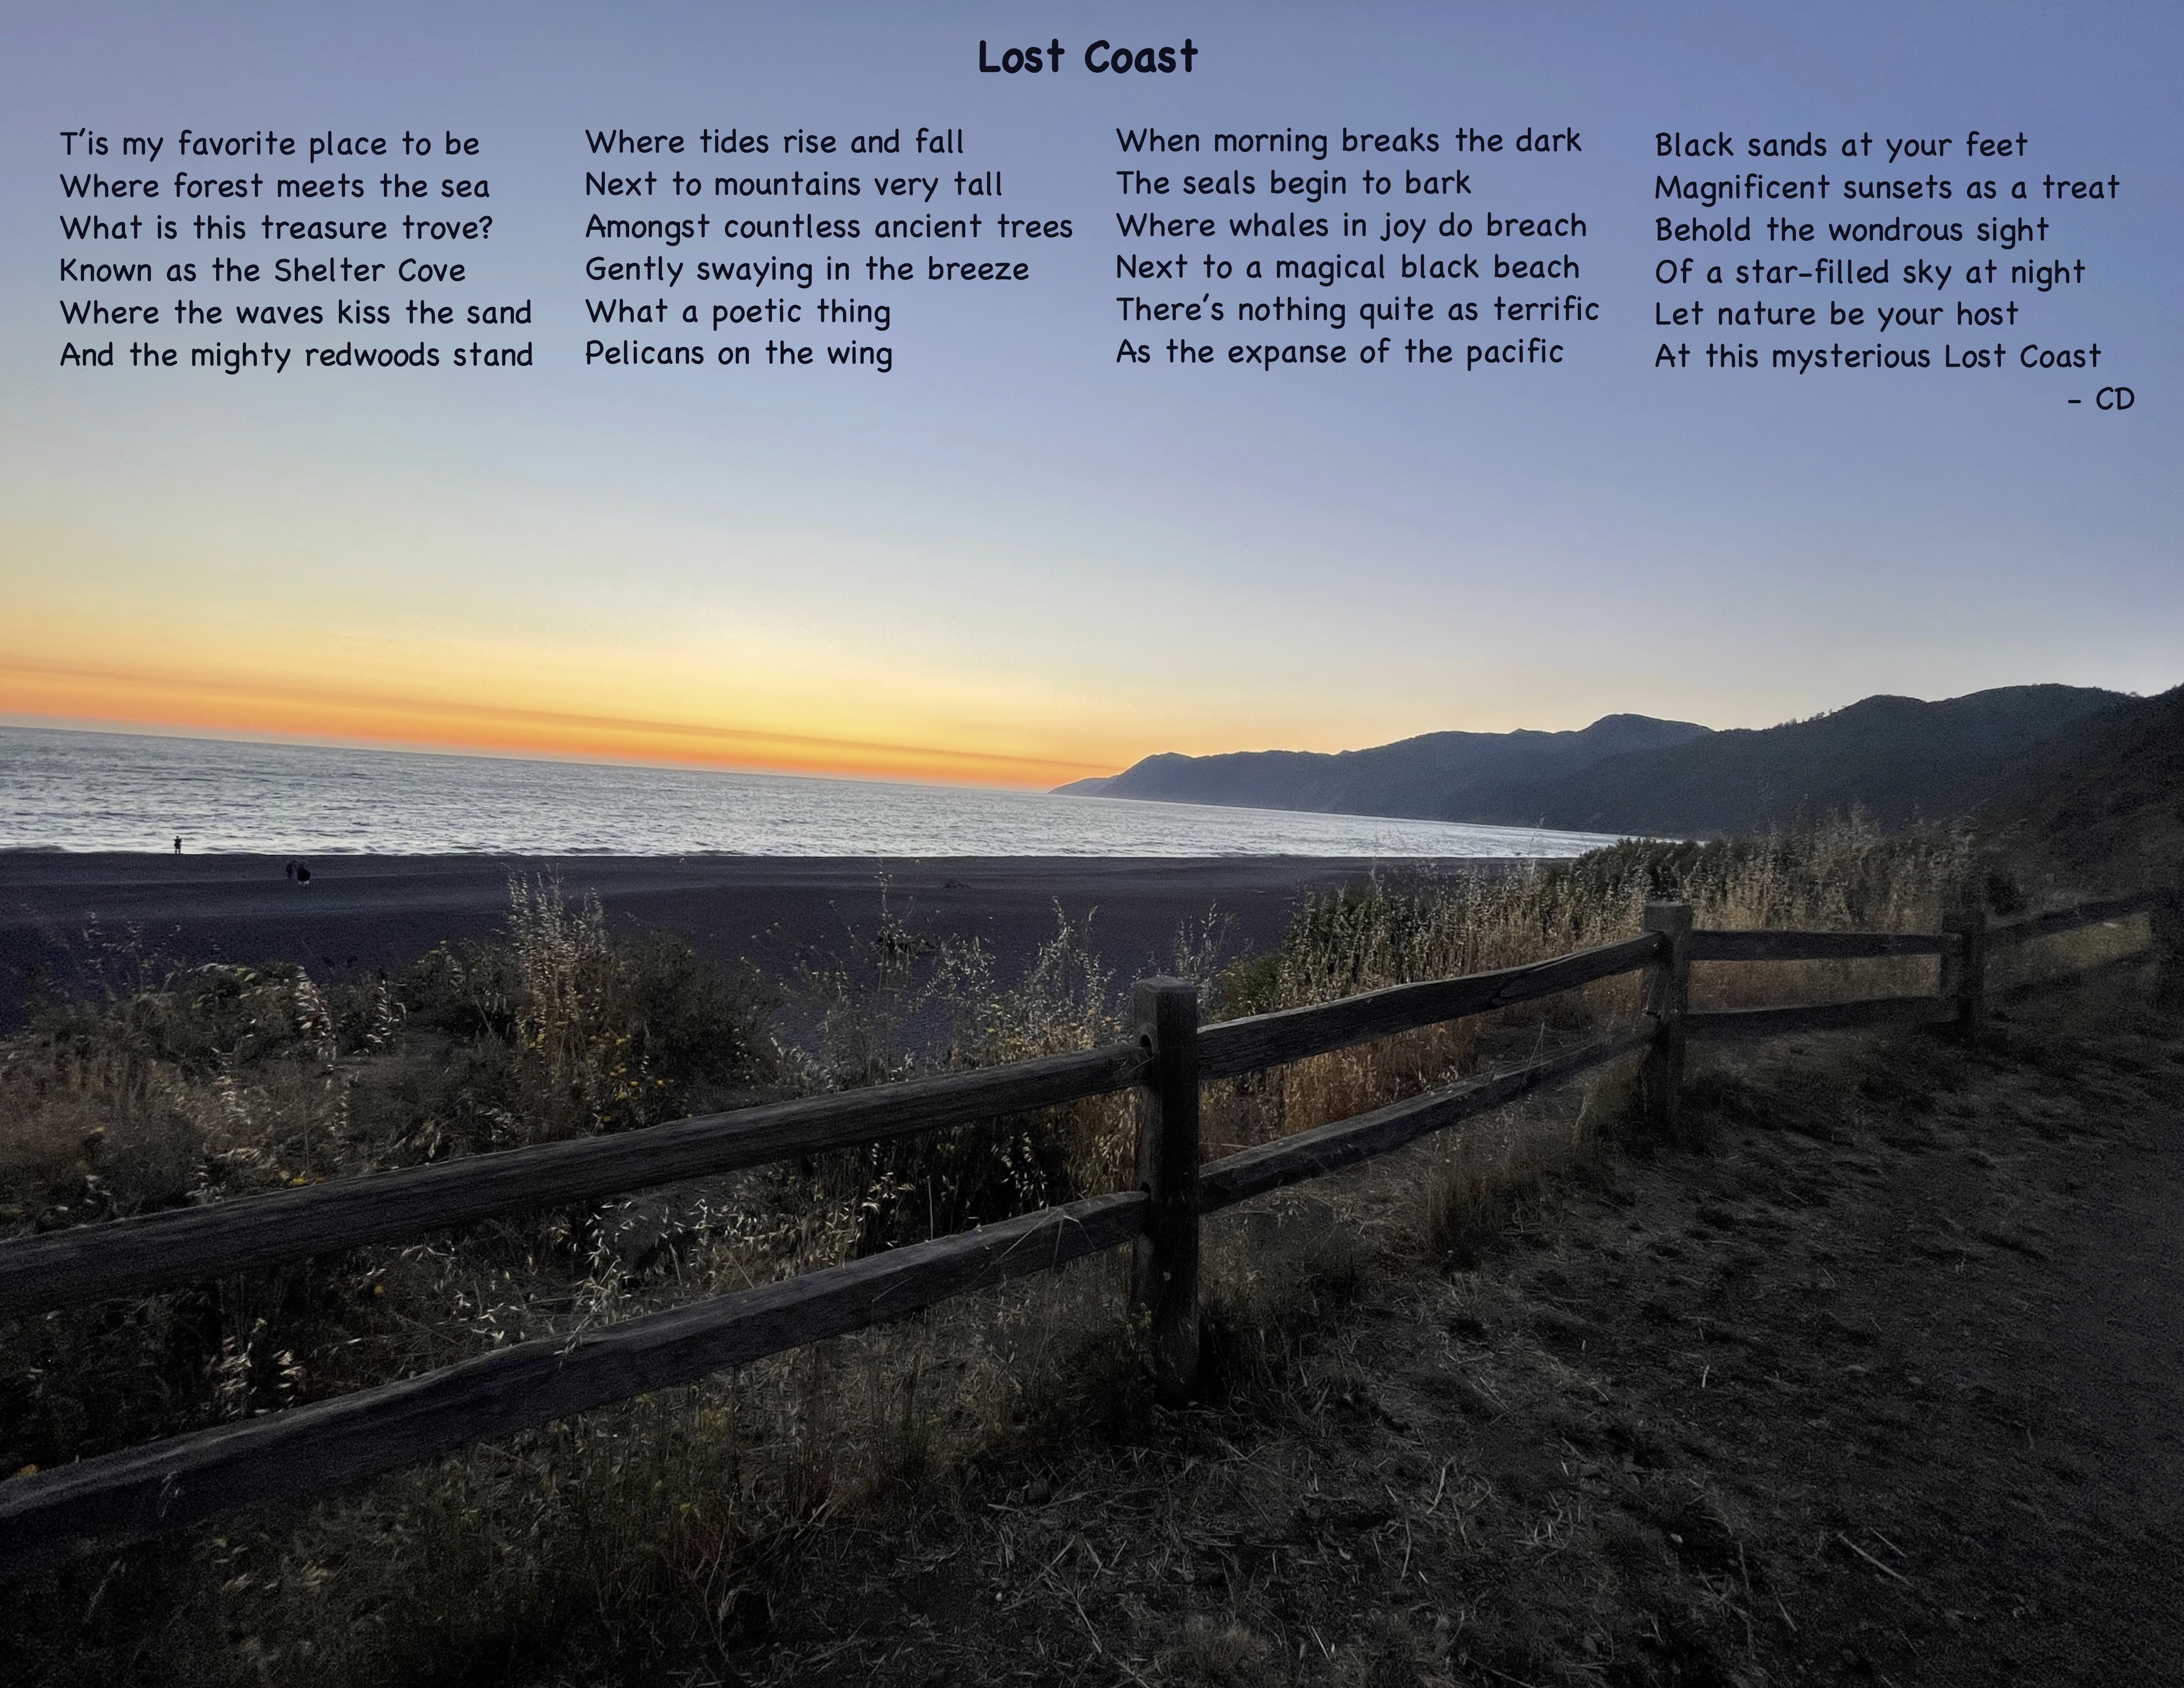 Lost Coast - Where Forest meets ocean